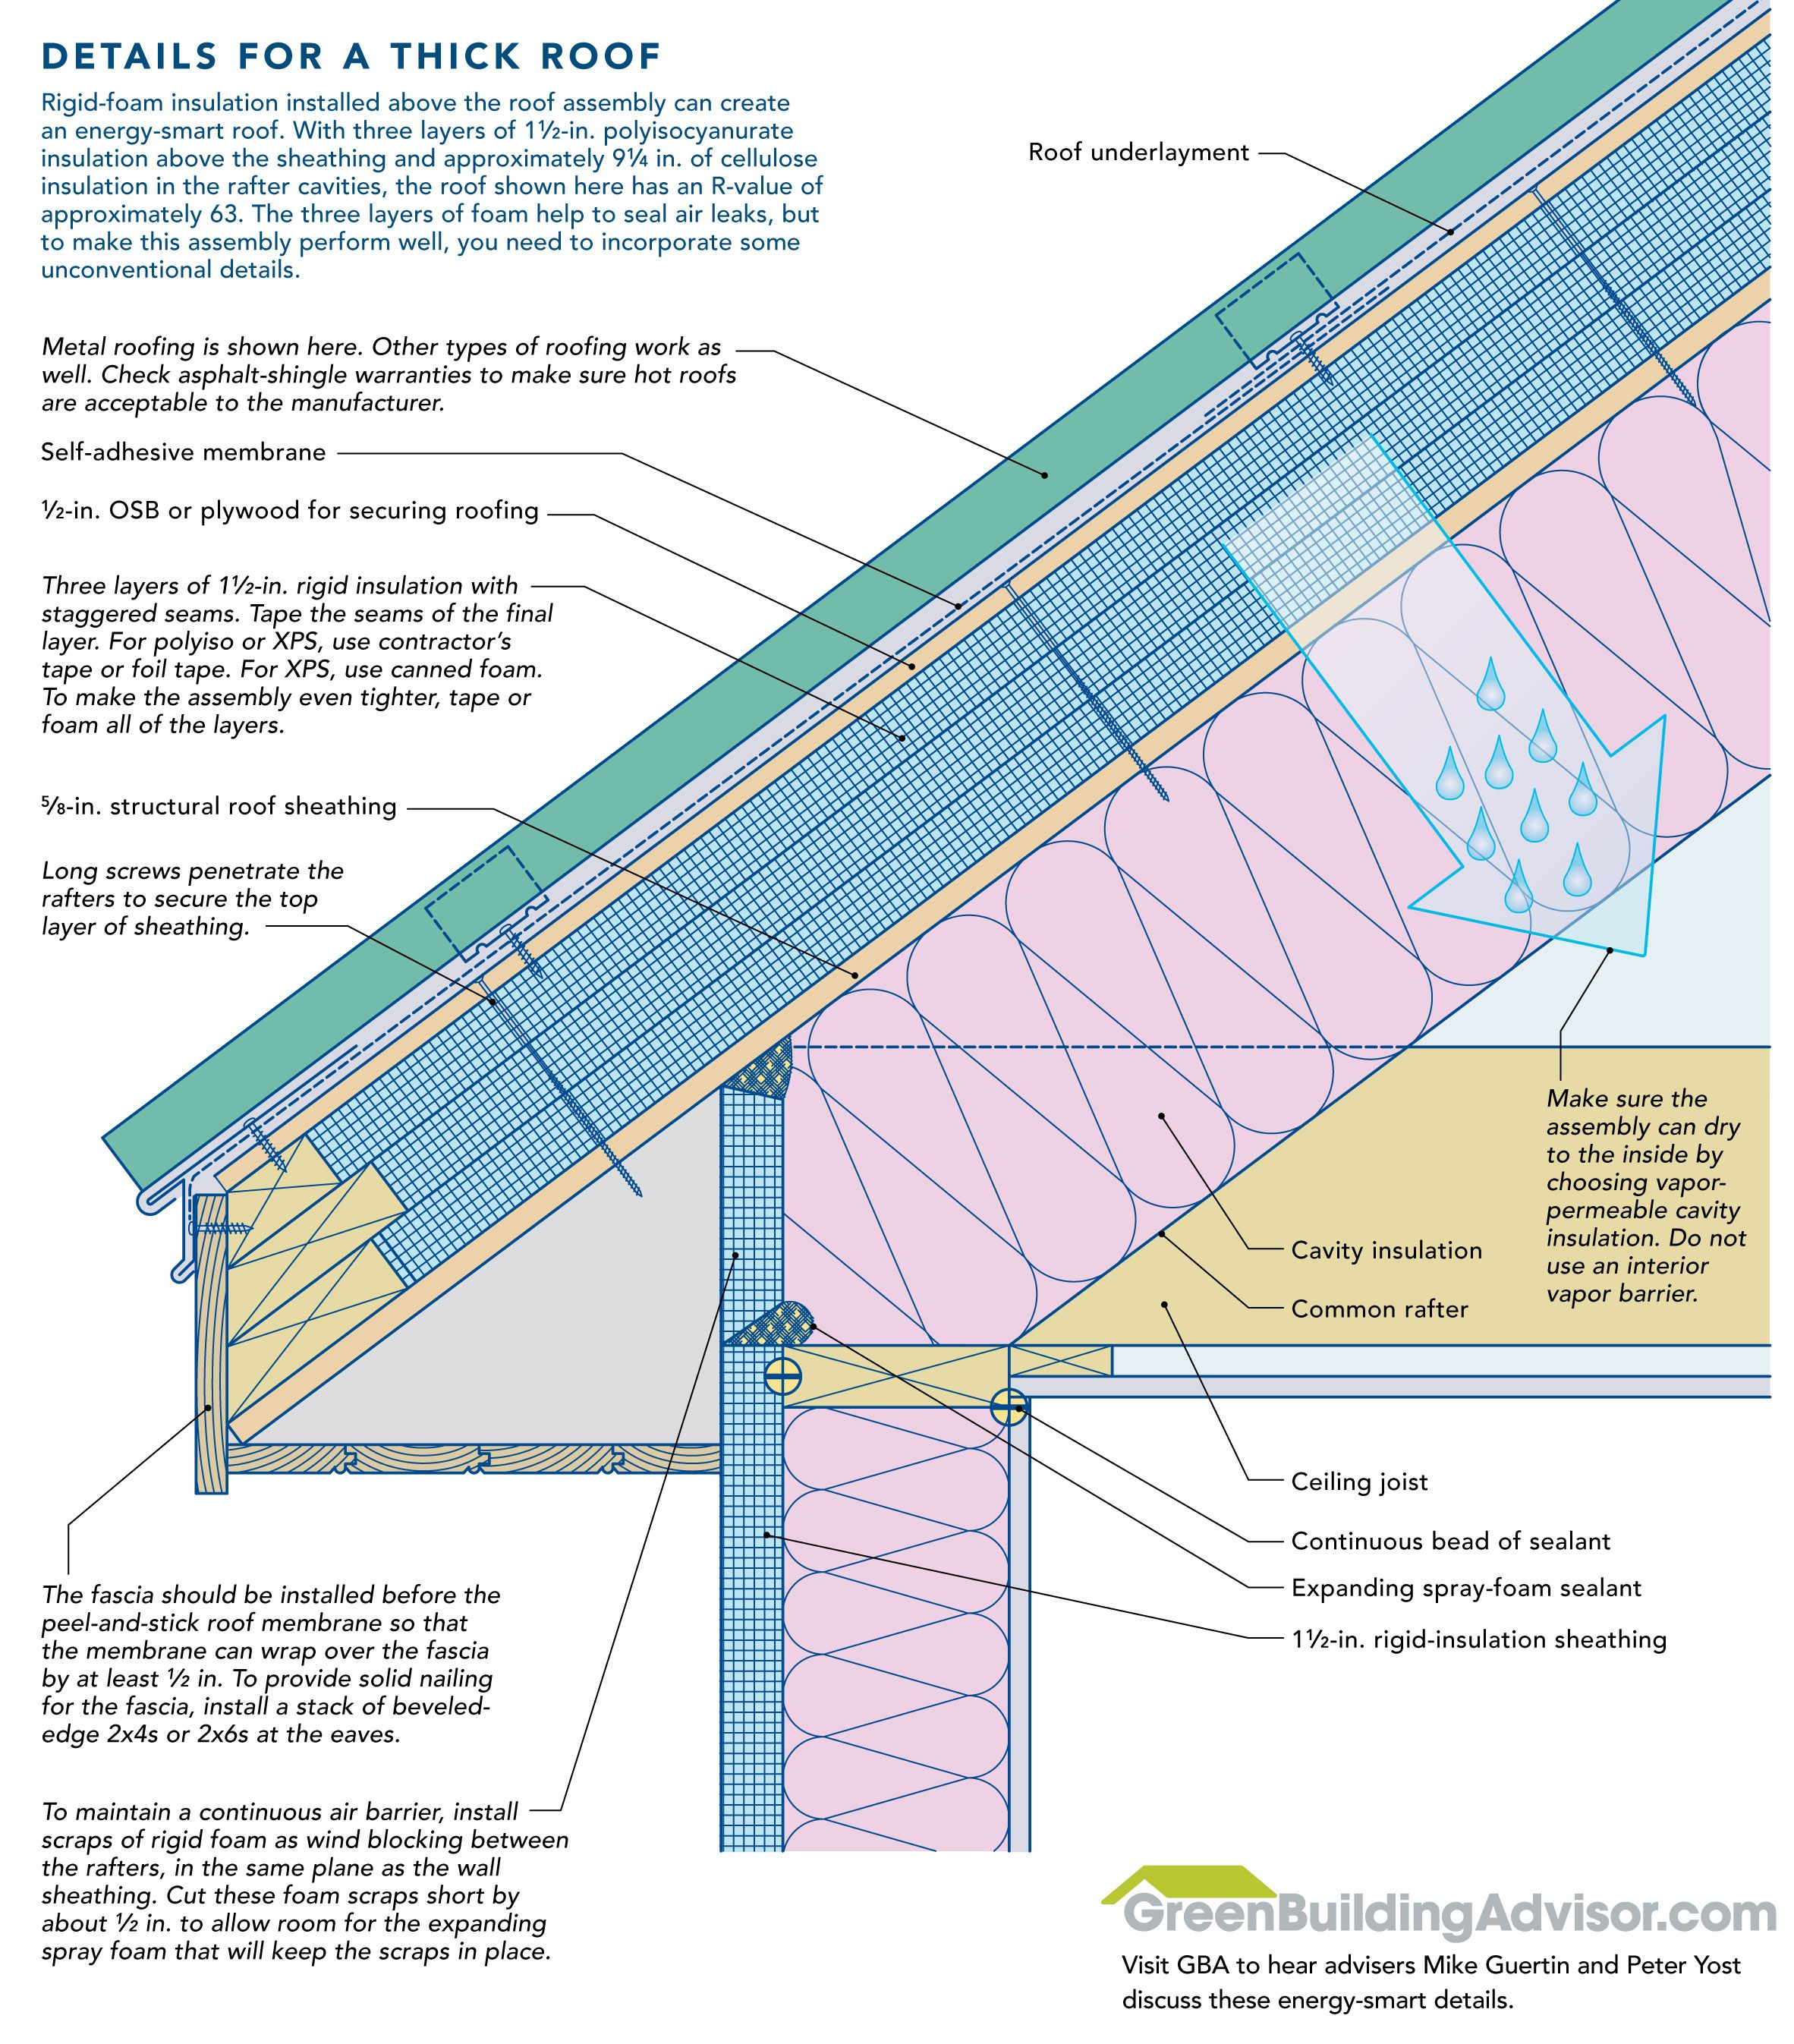 How To Install Rigid Foam On Top Of Roof Sheathing Roof Sheathing Cathedral Ceiling